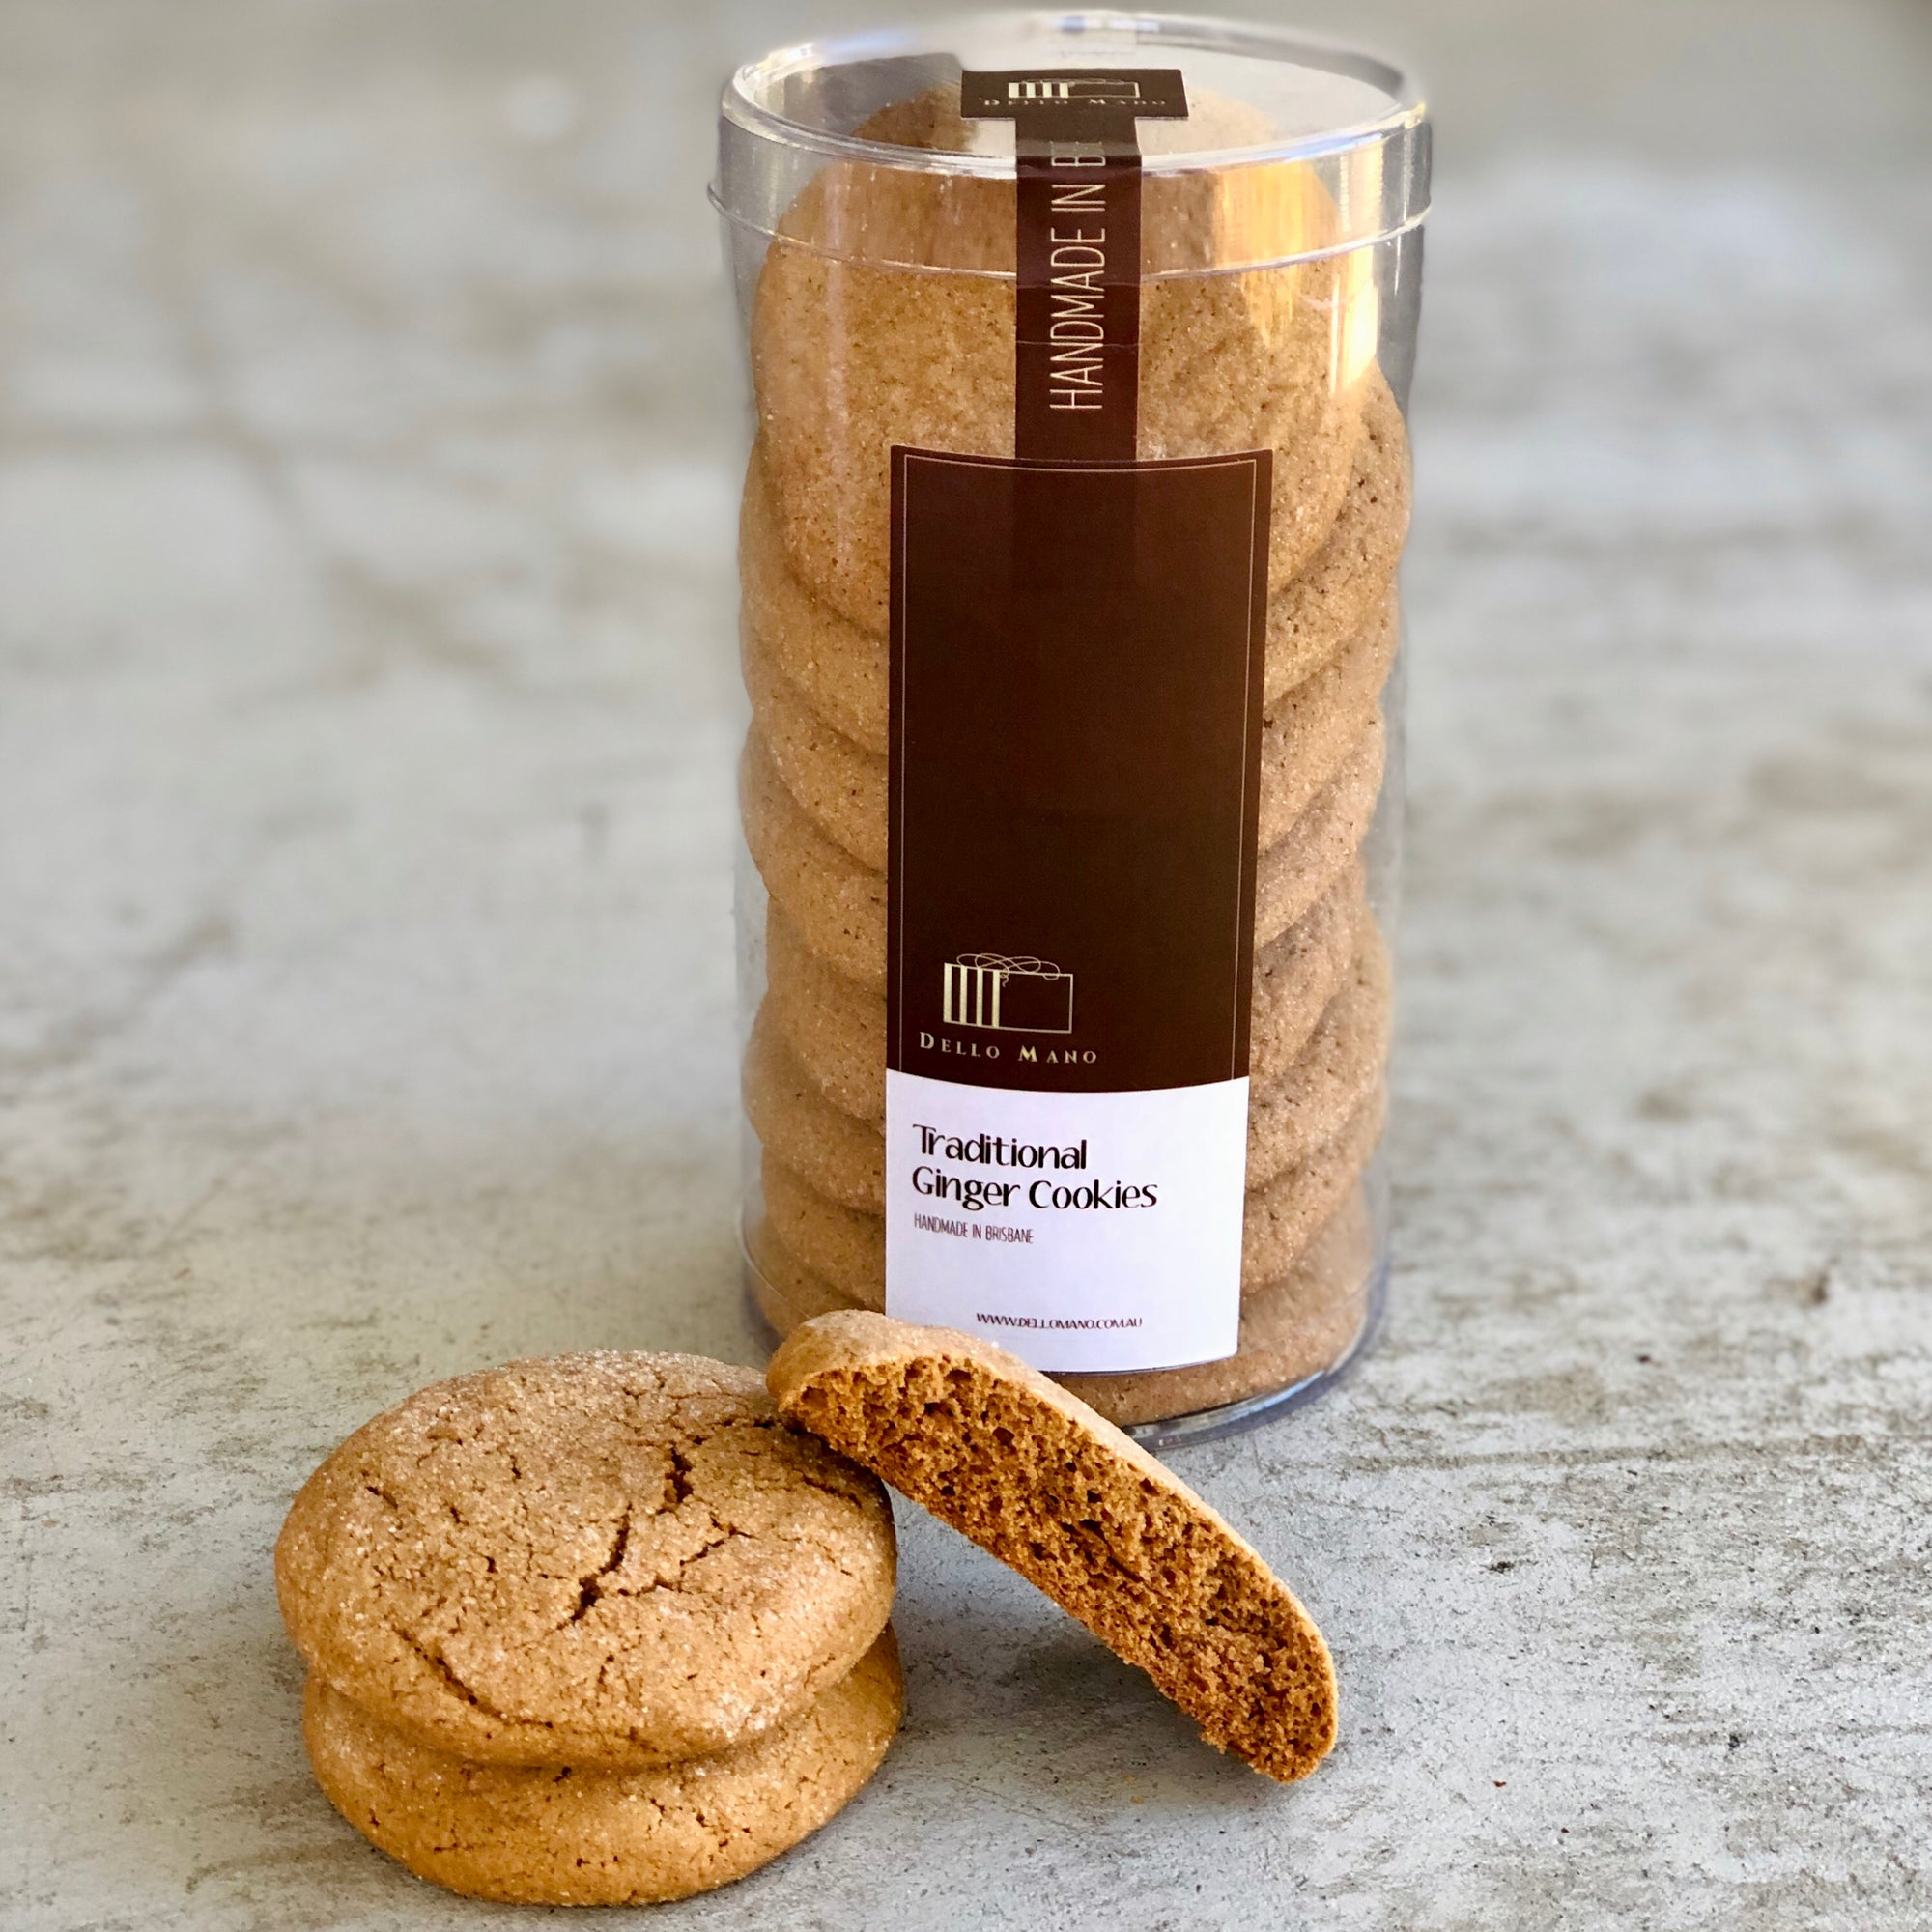 Traditional Ginger Cookies split open in front of a tube of cookies with brown label